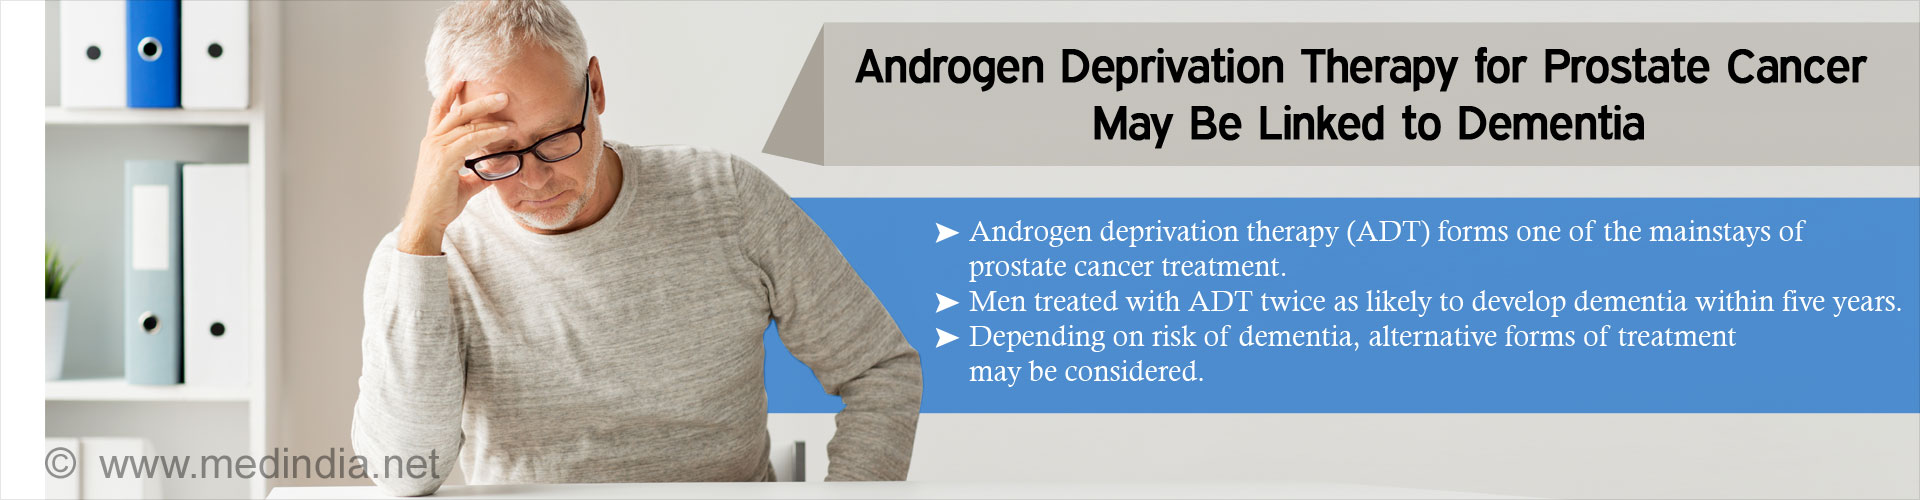 Androgen Deprivation Therapy for Prostate Cancer and Risk of Dementia – A Retrospective Study